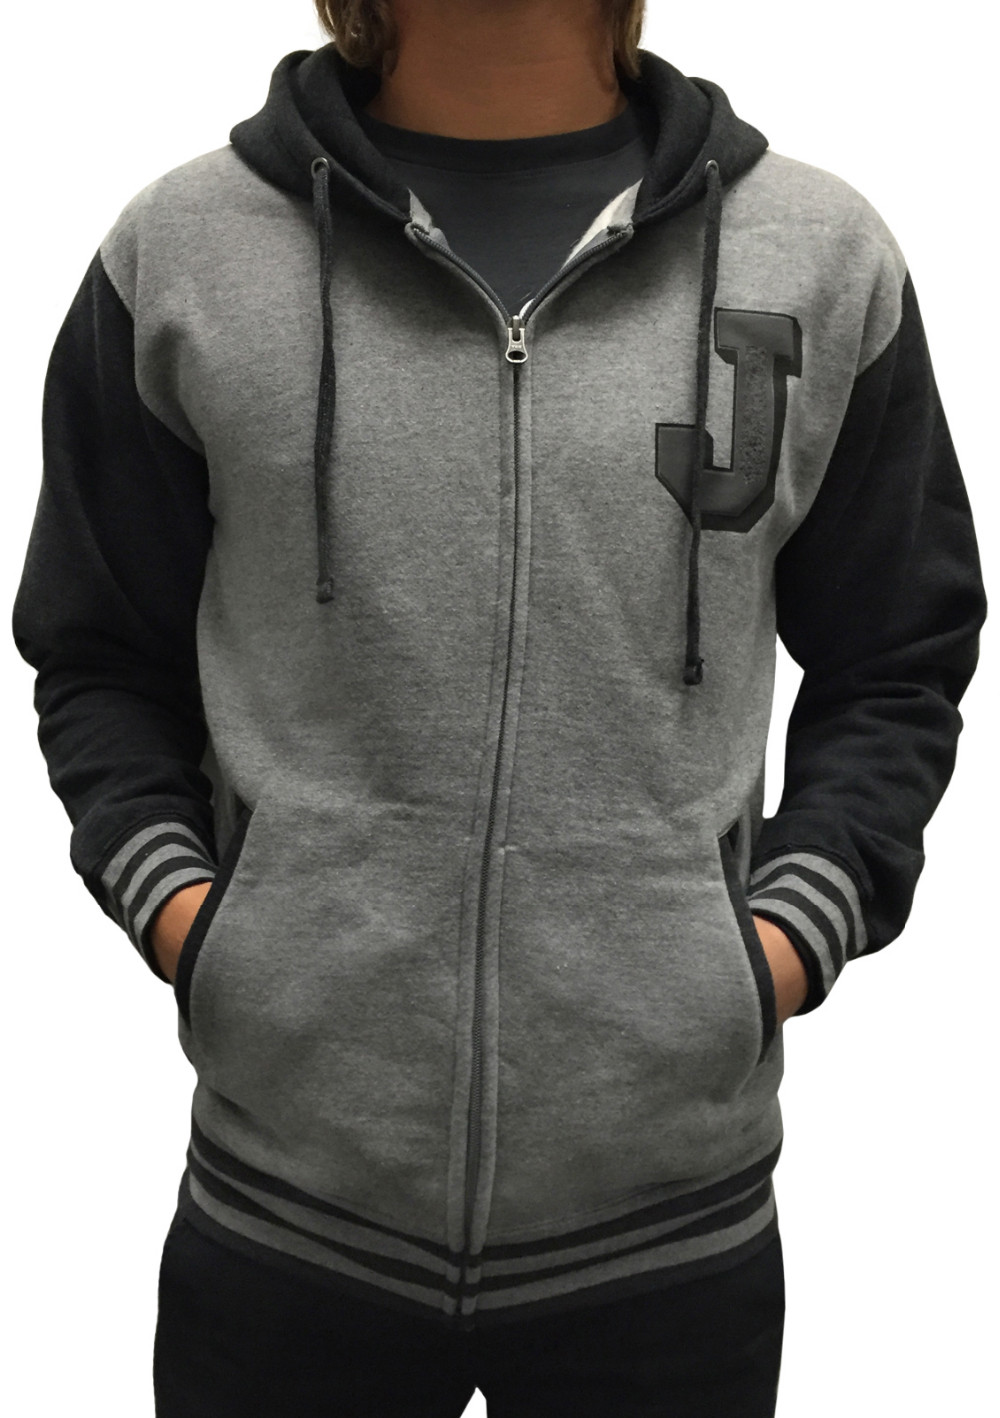 Custom logo cheap zip up fleece hoodie unisex hoodies plus for Custom shirts and hoodies cheap